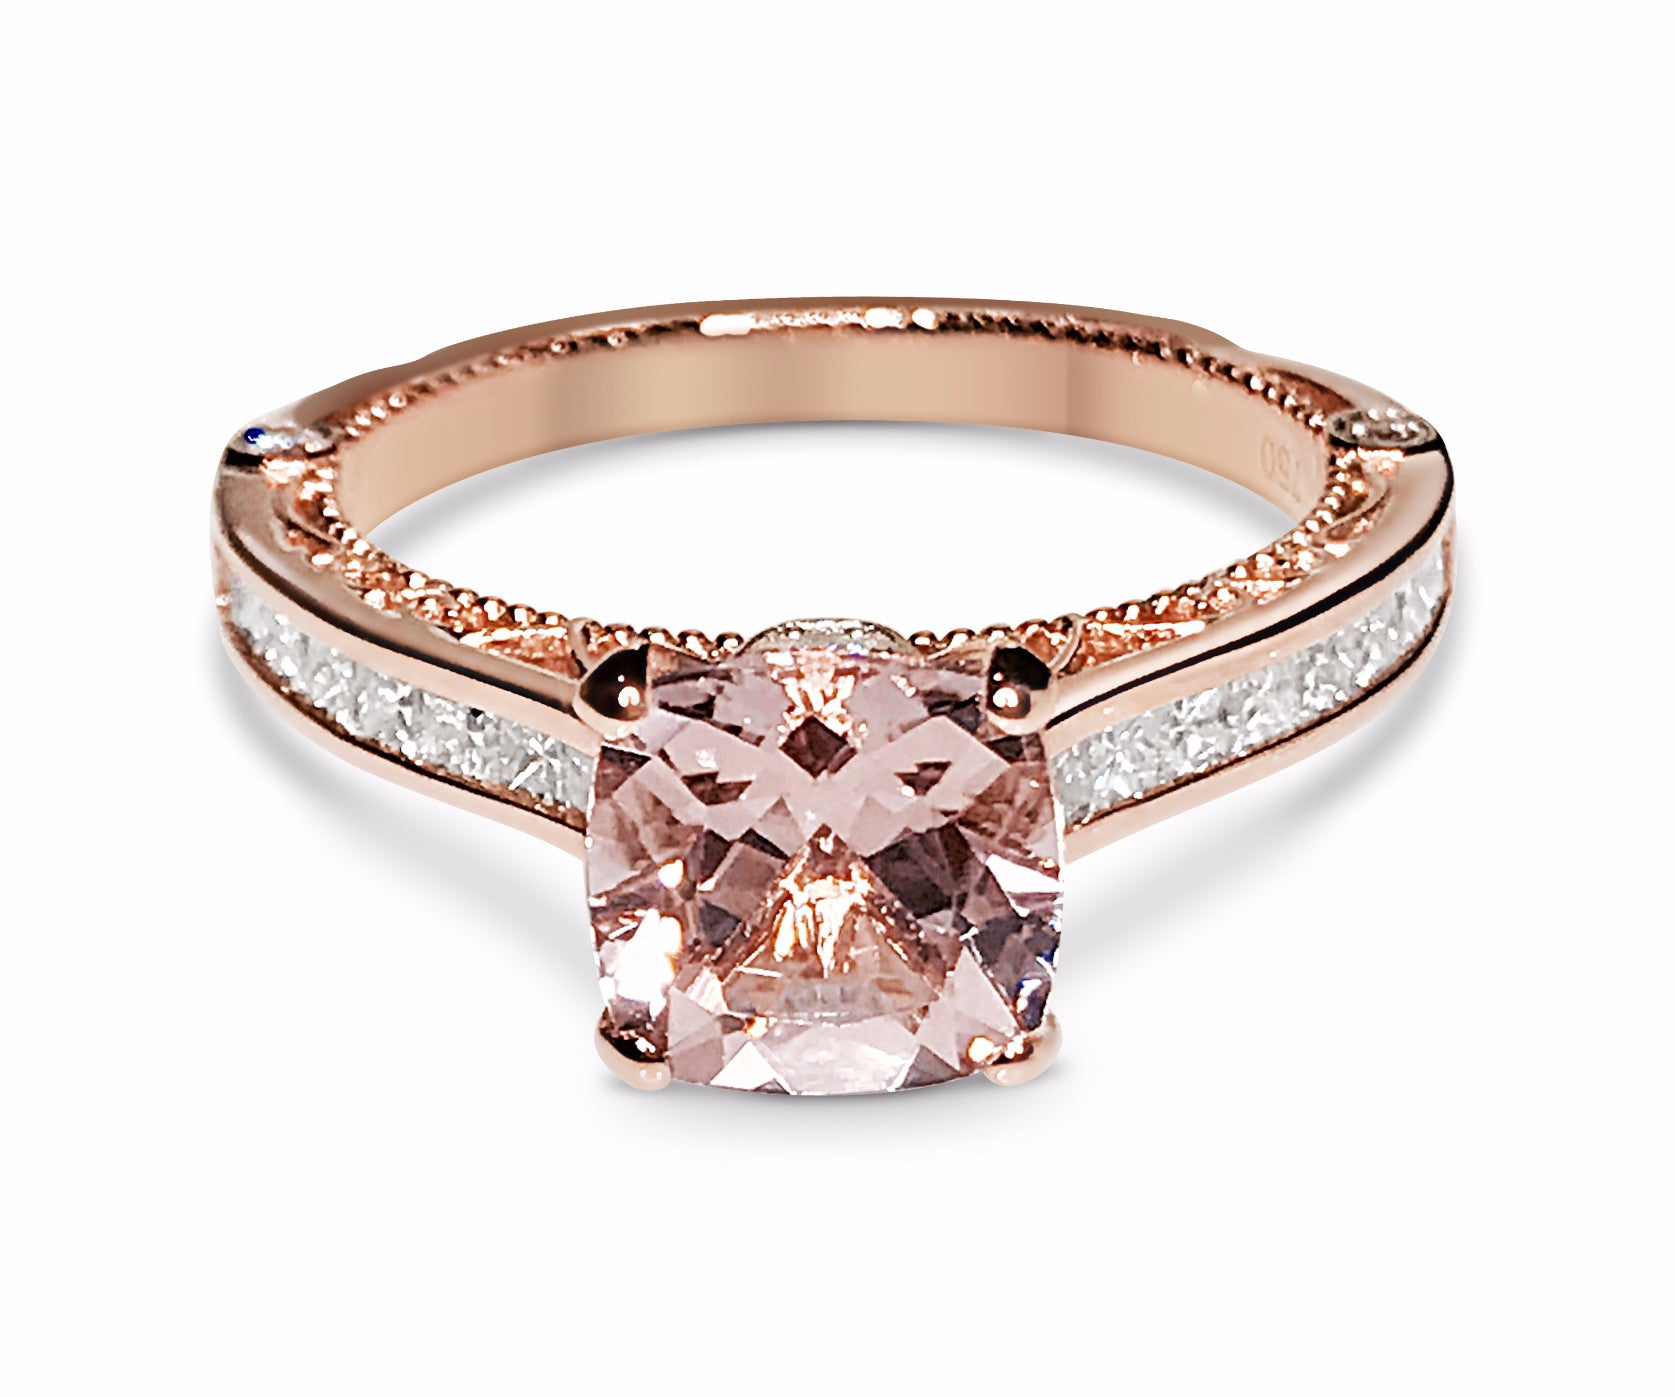 prices jewellery texas rings engagement oval white in shira diamond carat rose gold ring halo dallas diamonds best mounting custom